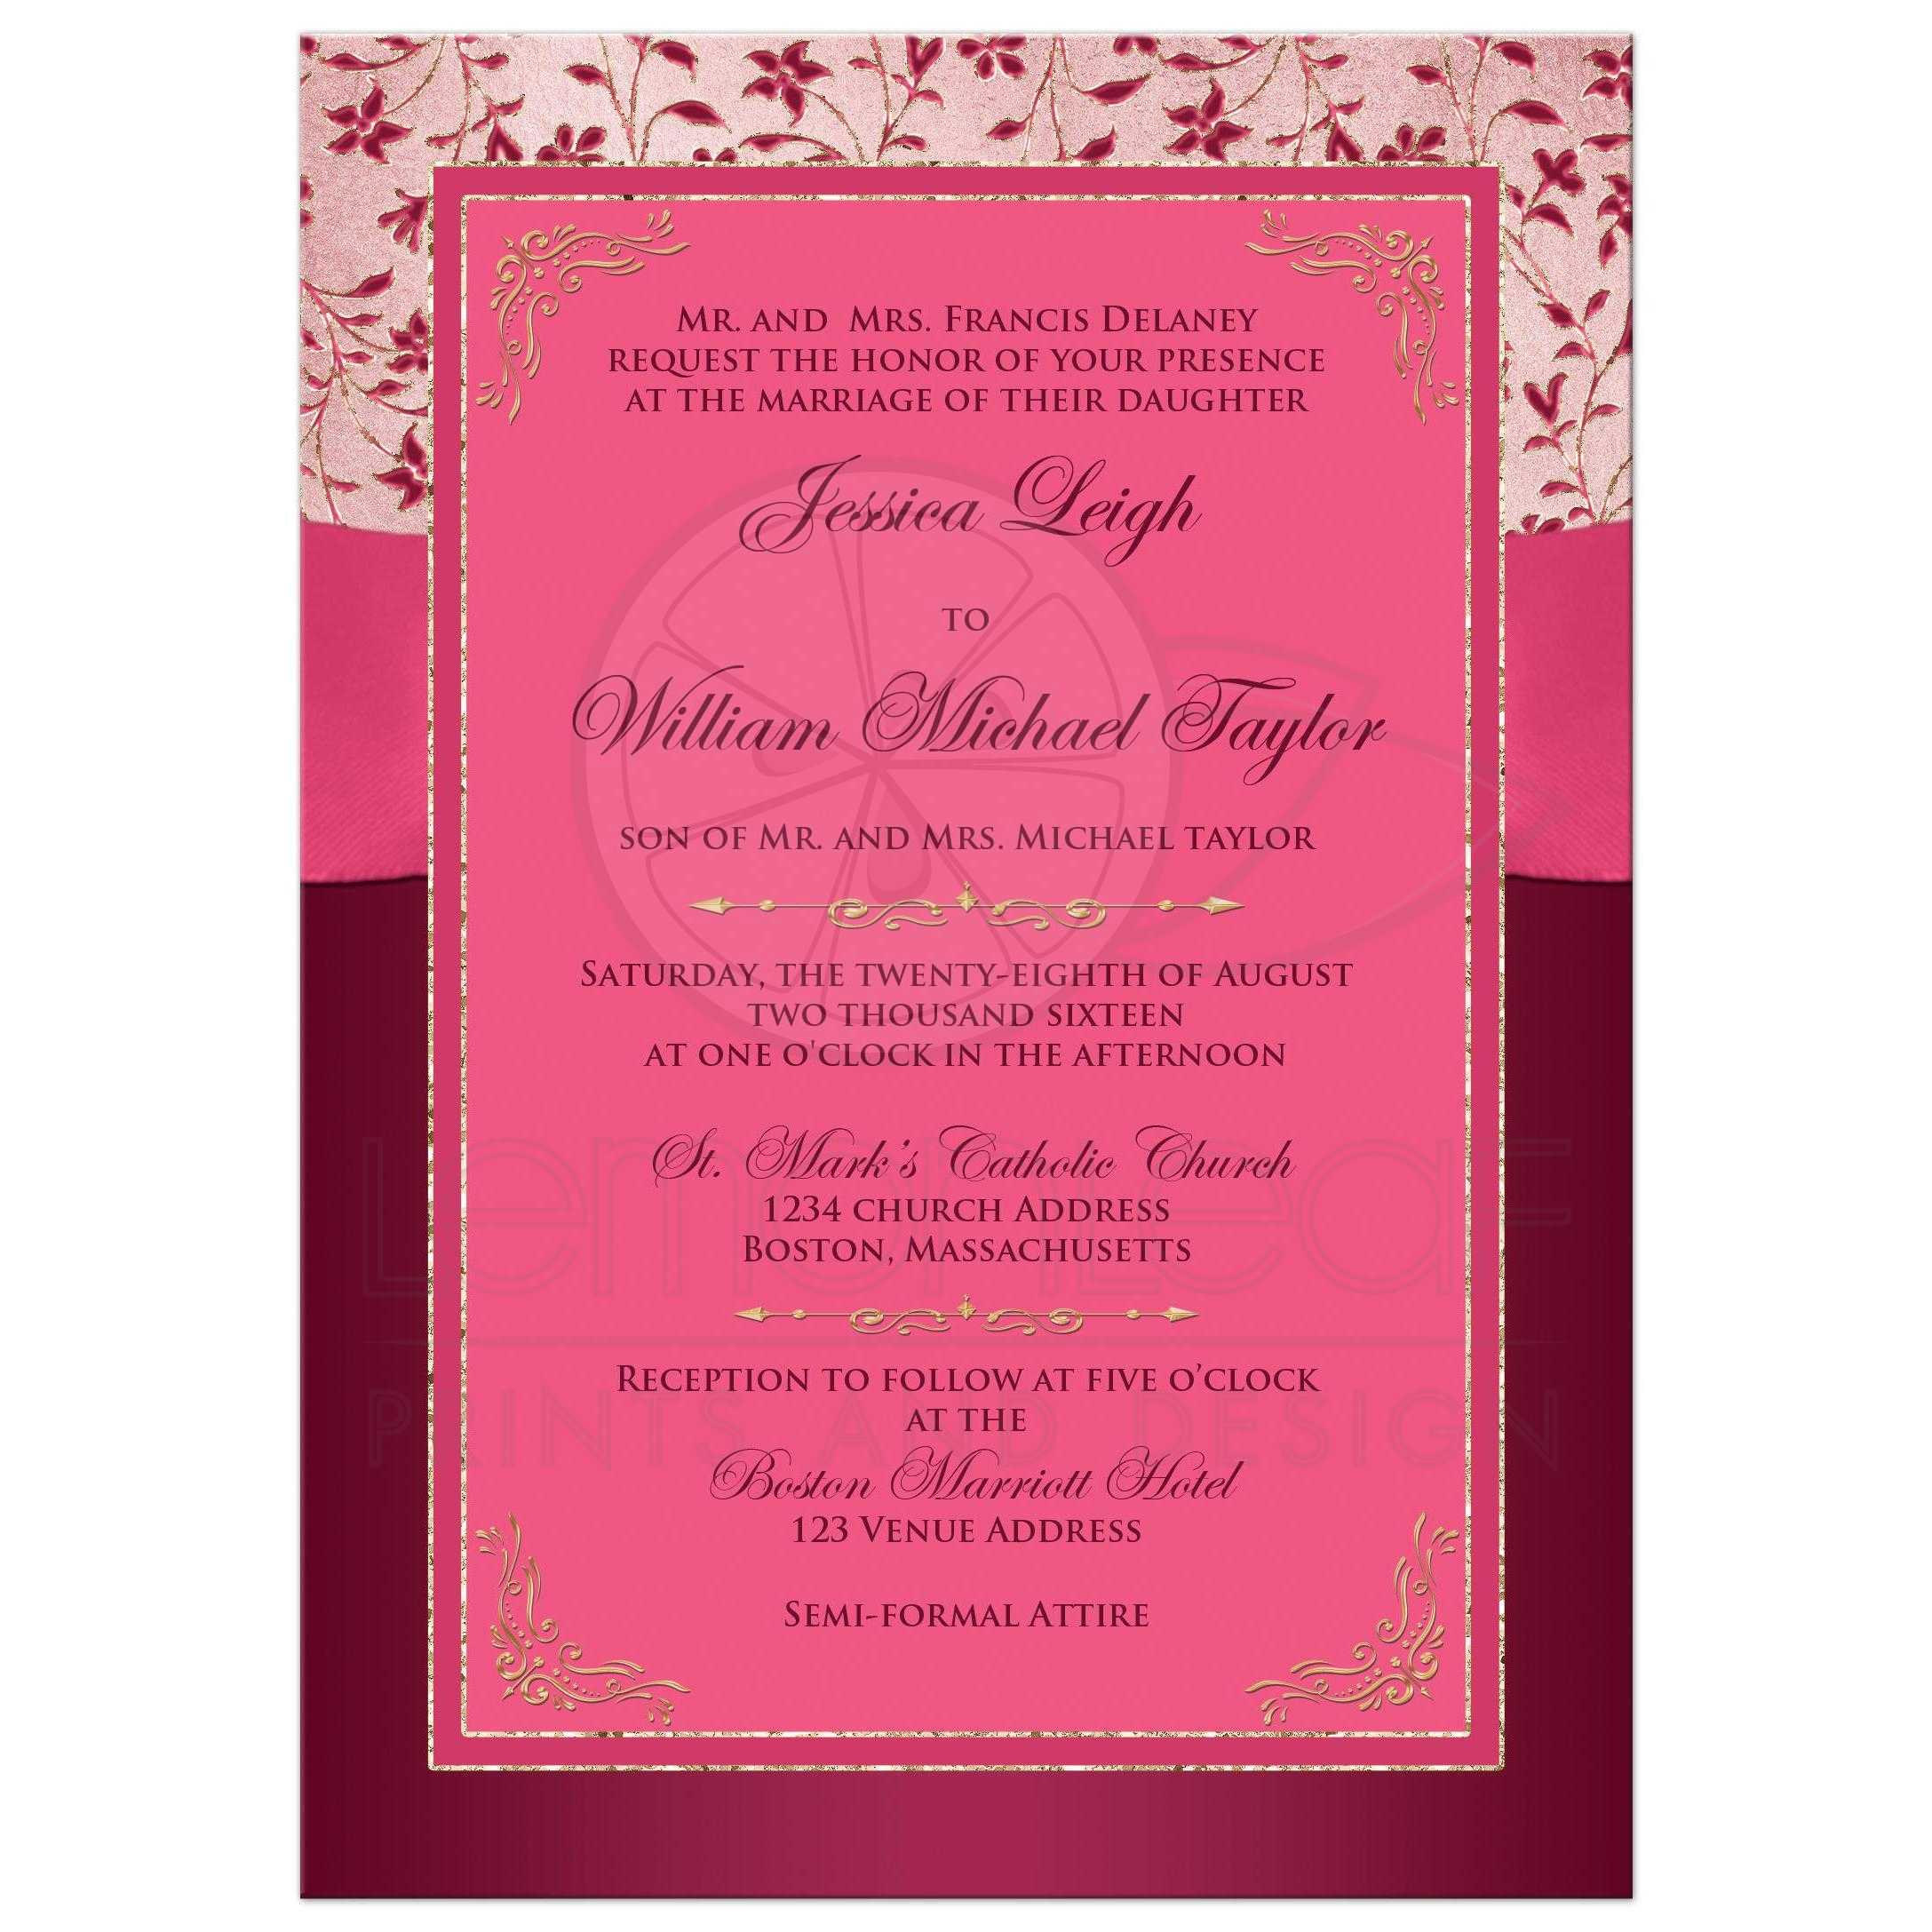 Wedding Invitation Burgundy Pink Rose Gold Floral – Pink and Red Wedding Invitations